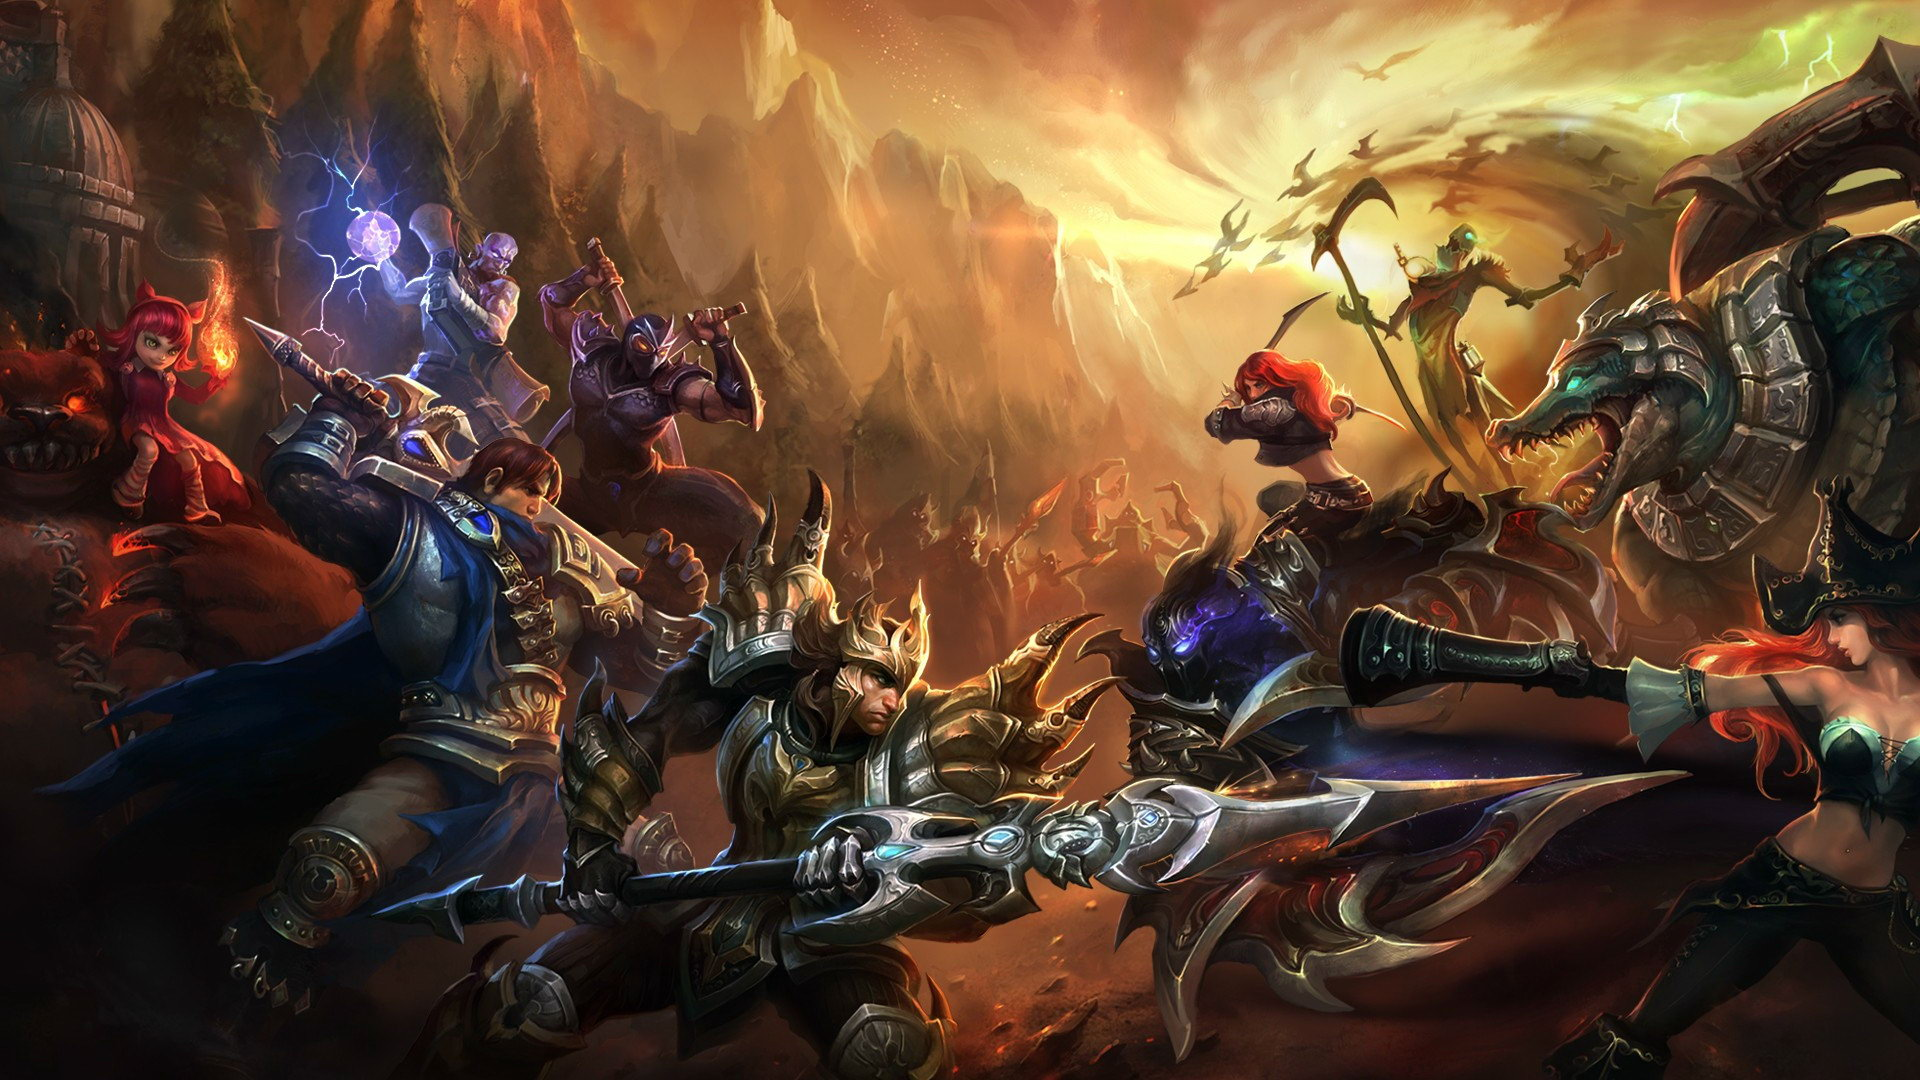 ¿Qué es el LOL? Latest-beautiful-wallpapers-of-League-of-Legends-01